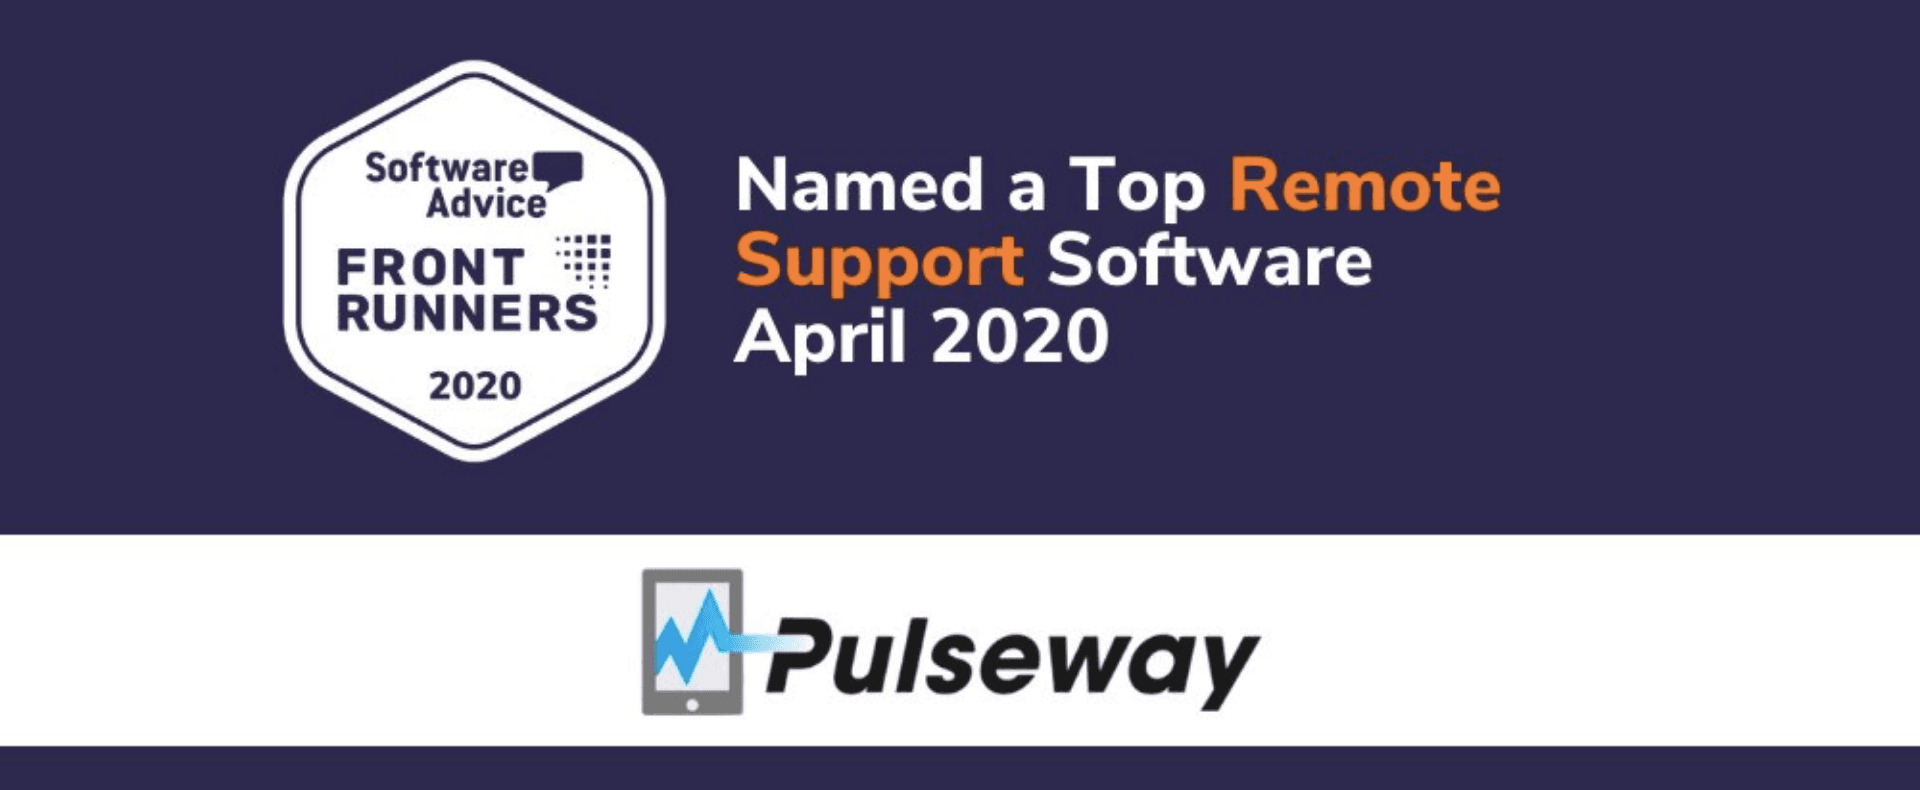 Pulseway ranked No.1 remote support software of 2020